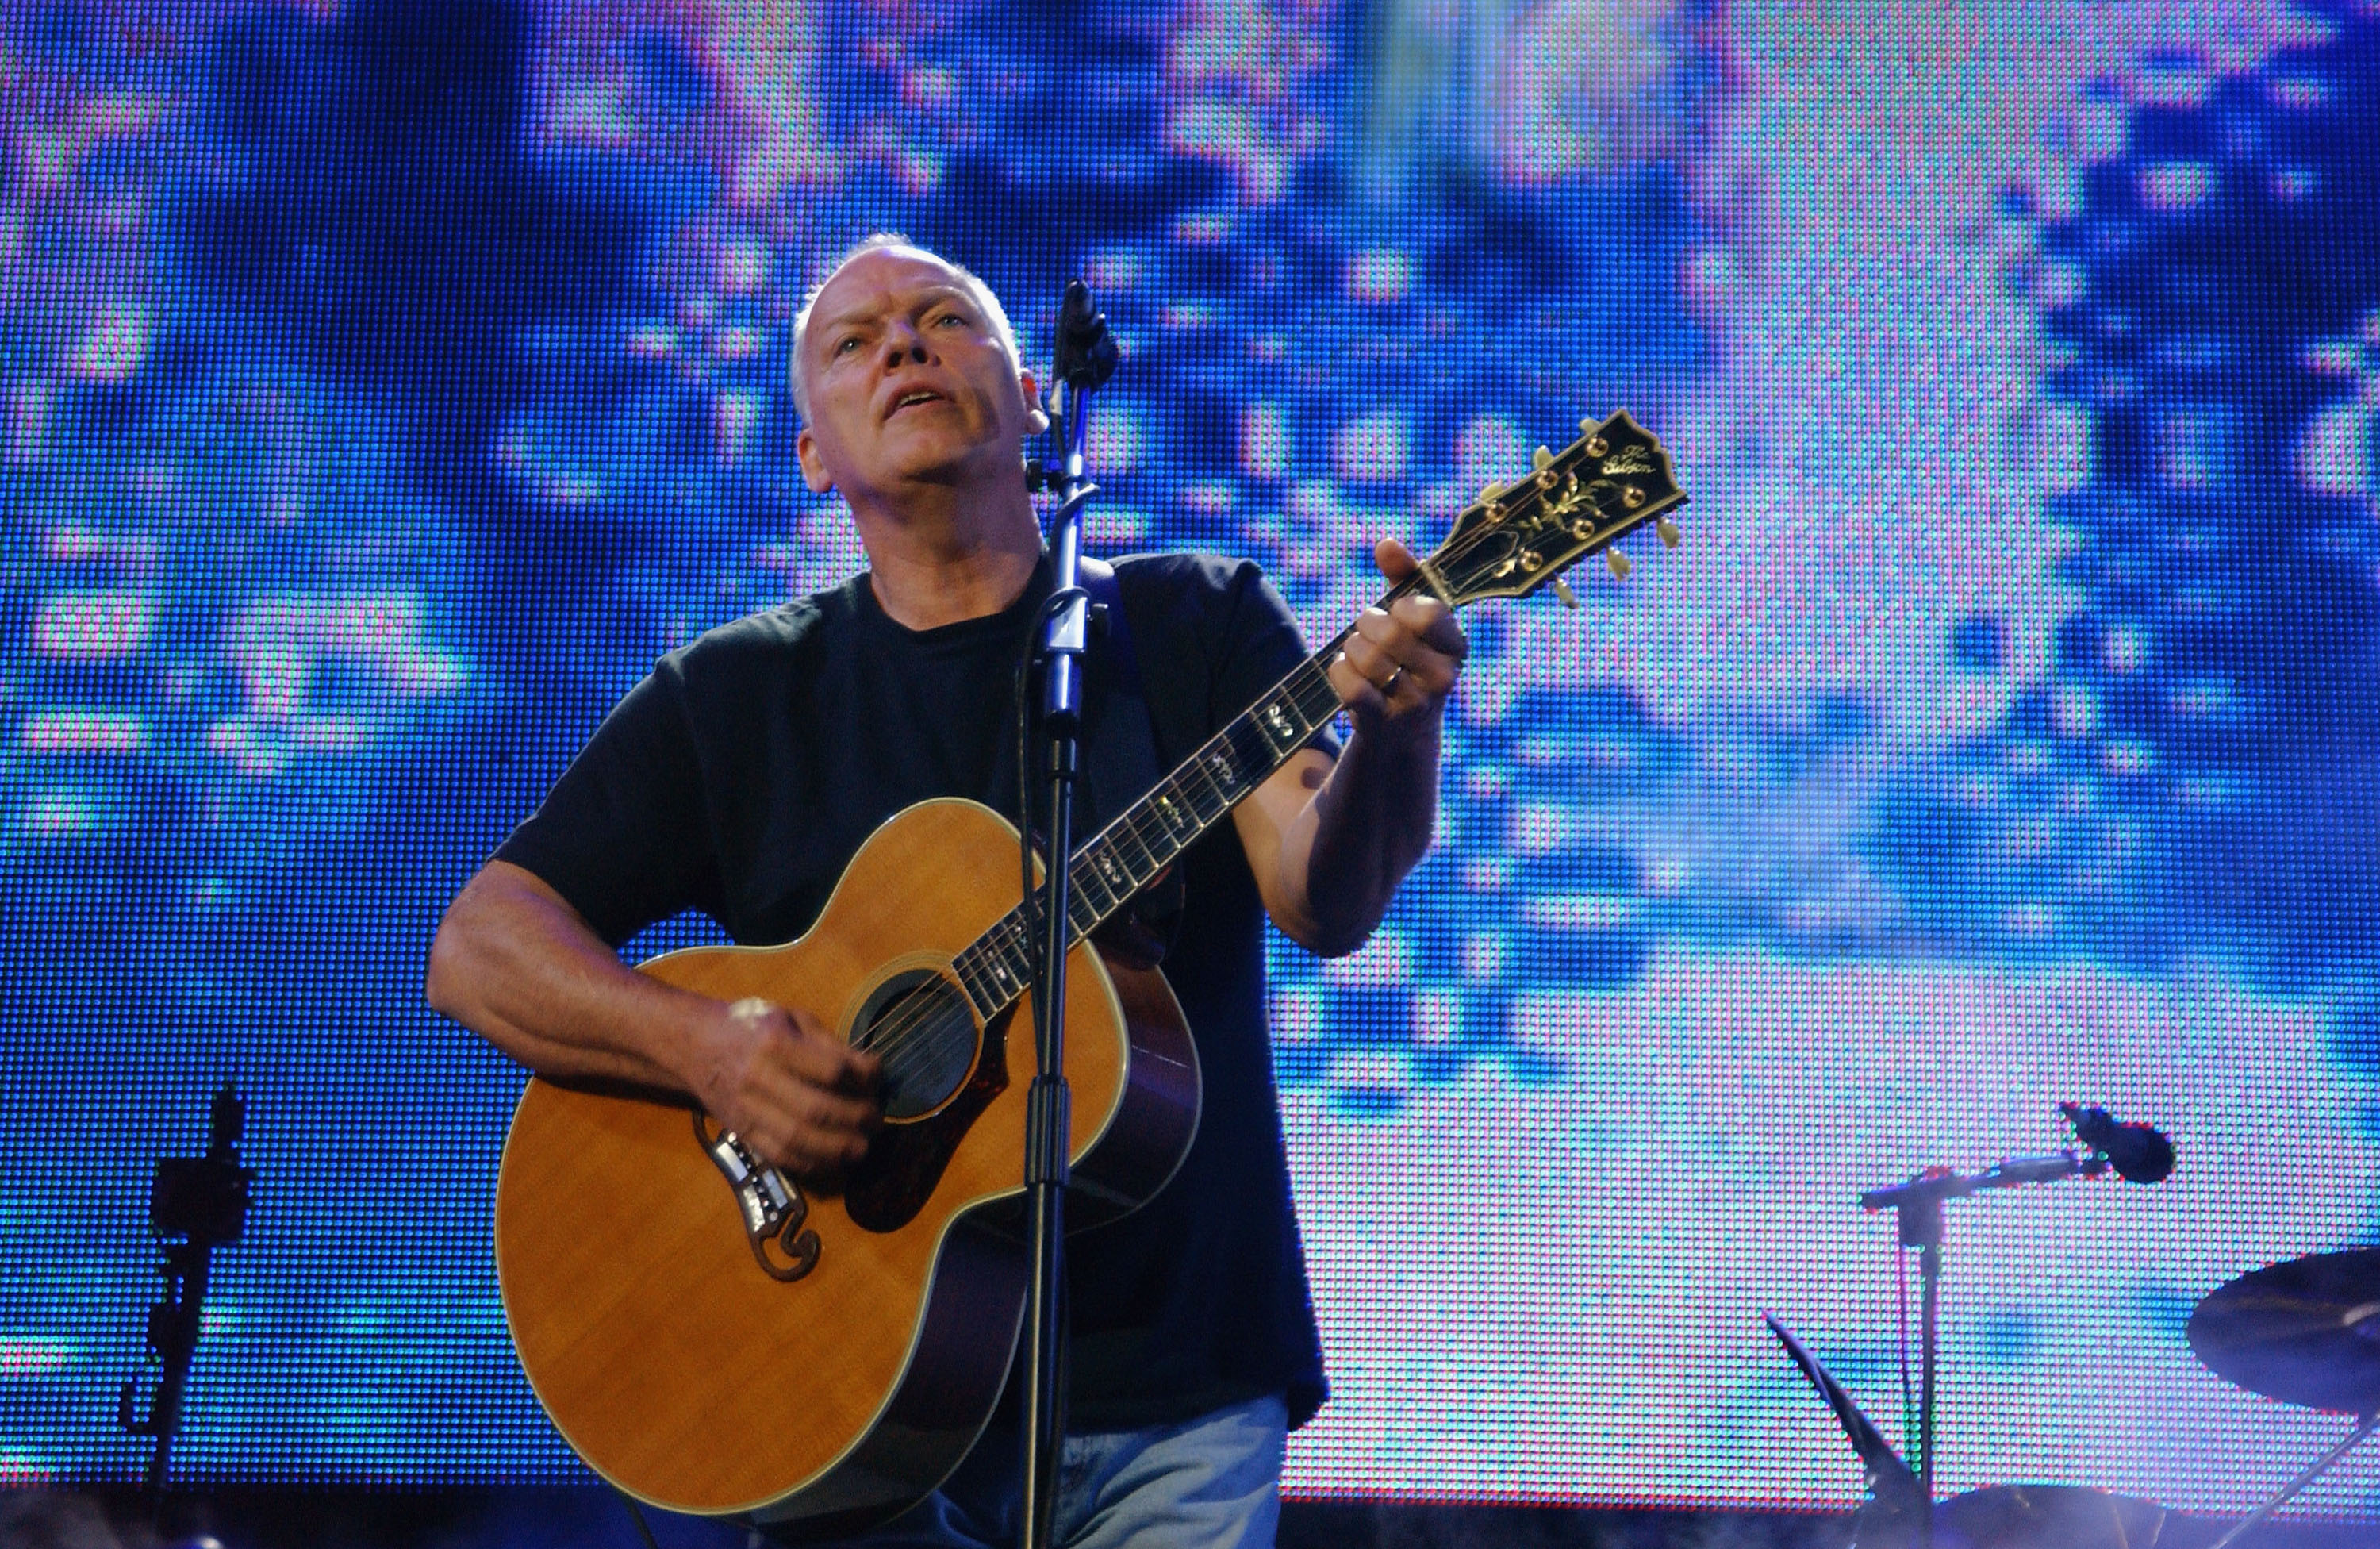 LONDON - JULY 2:  (EMBARGOED FOR PUBLICATION IN UK TABLOID NEWSPAPERS UNTIL 48 HOURS AFTER CREATE DATE AND TIME) Pink Floyd's